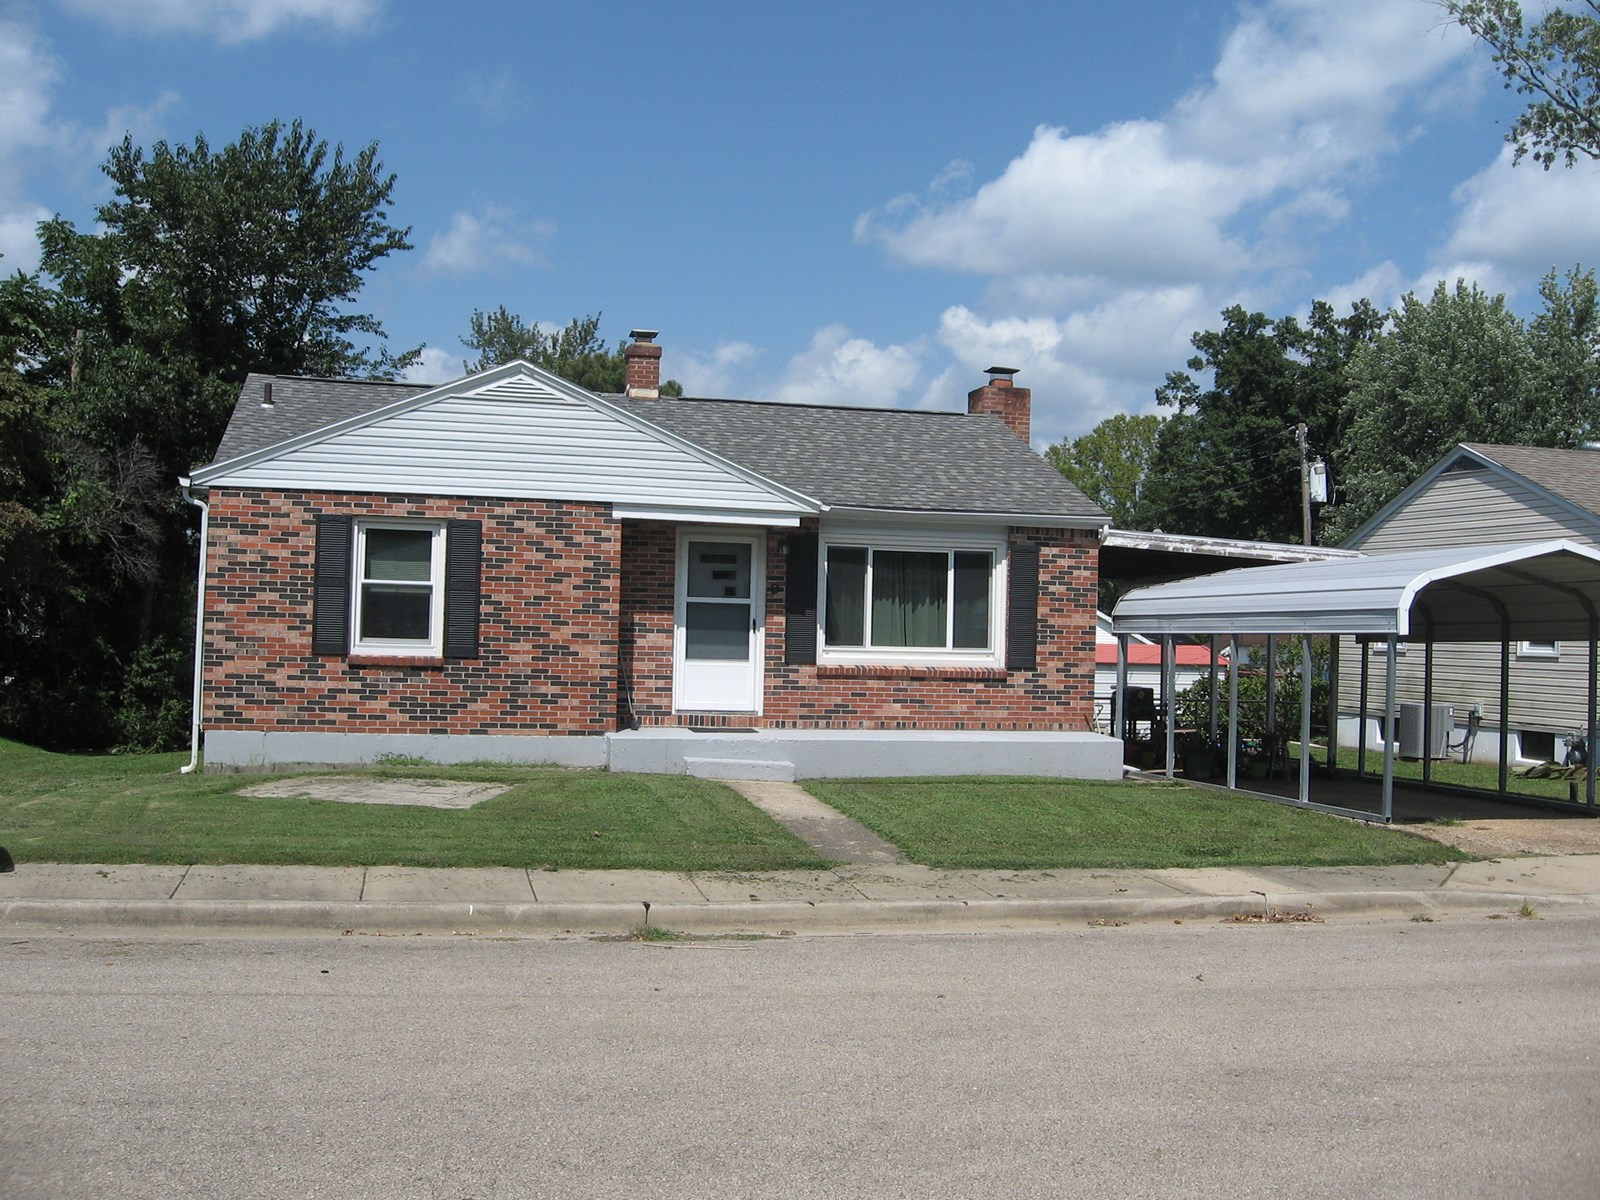 2-BR, 1-BA HOME ON DEAD-END STREET